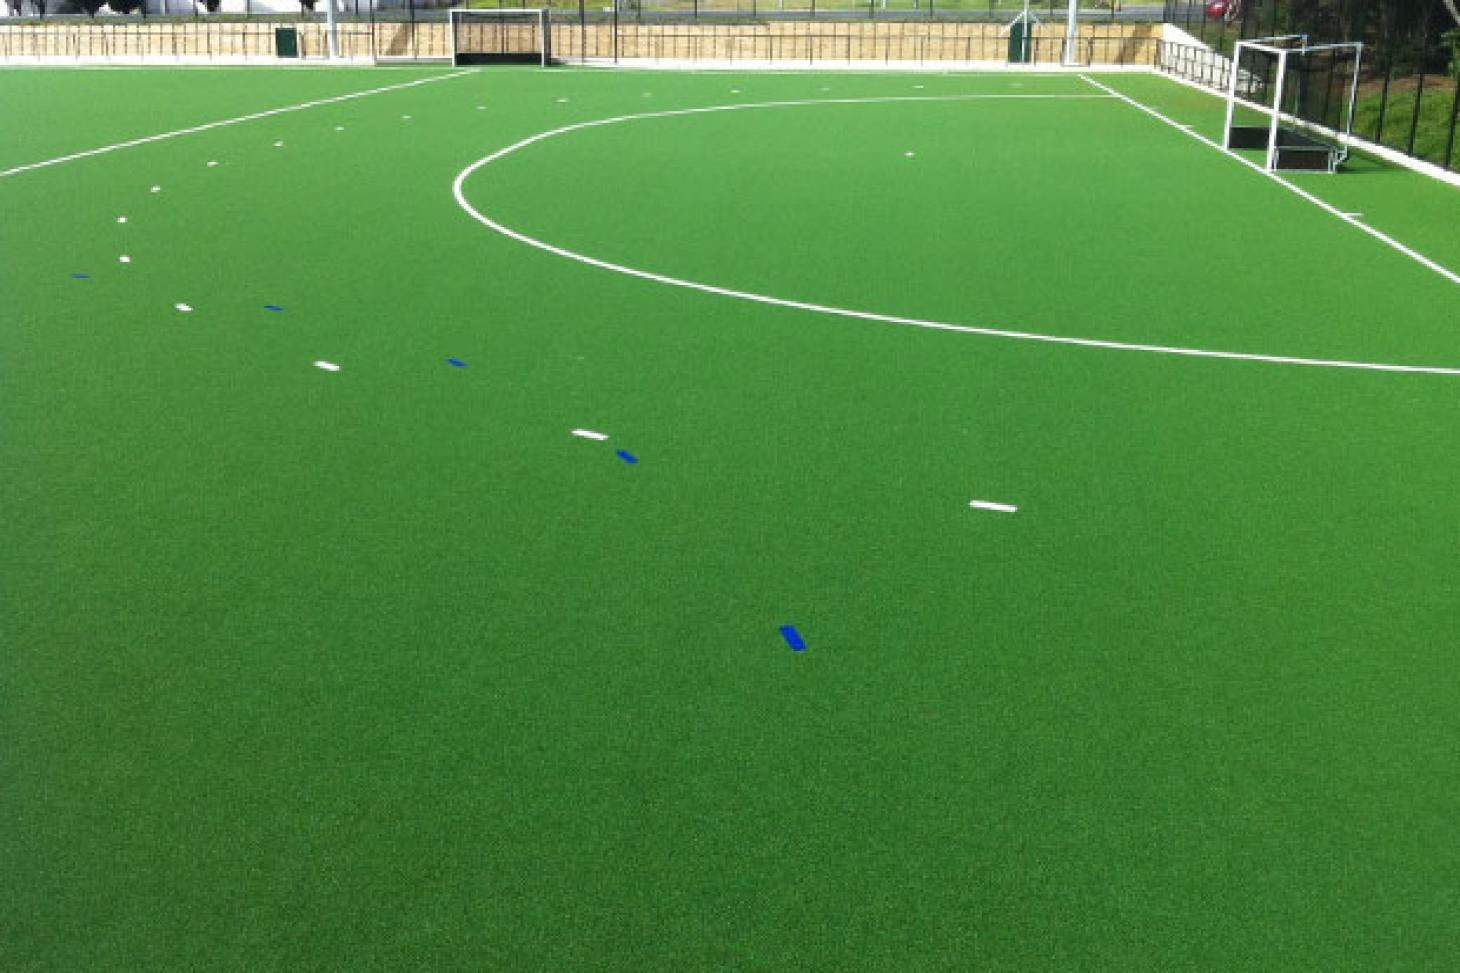 Cumberland Lawn Tennis Club Outdoor | Astroturf hockey pitch